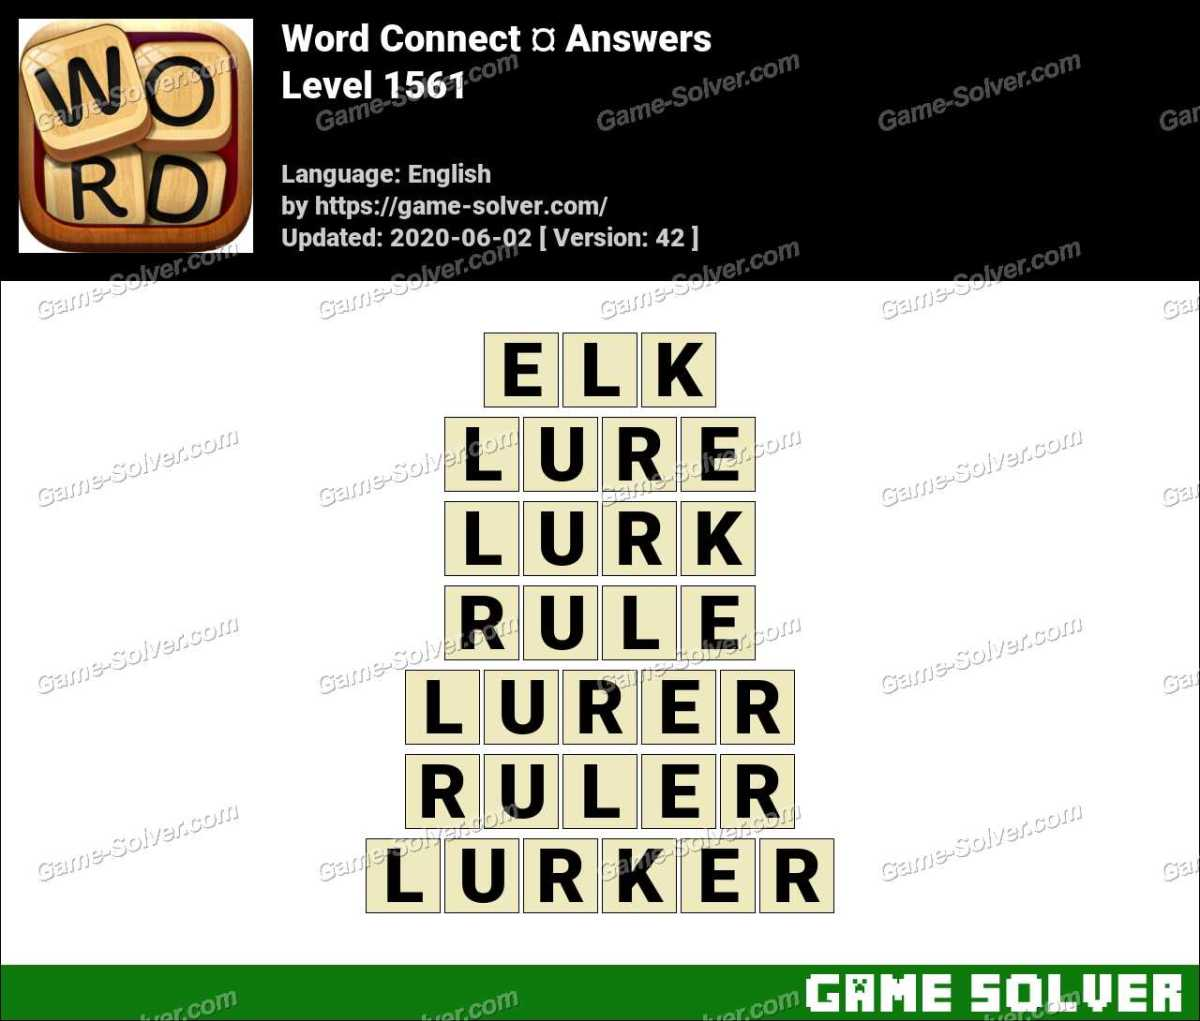 Word Connect Level 1561 Answers